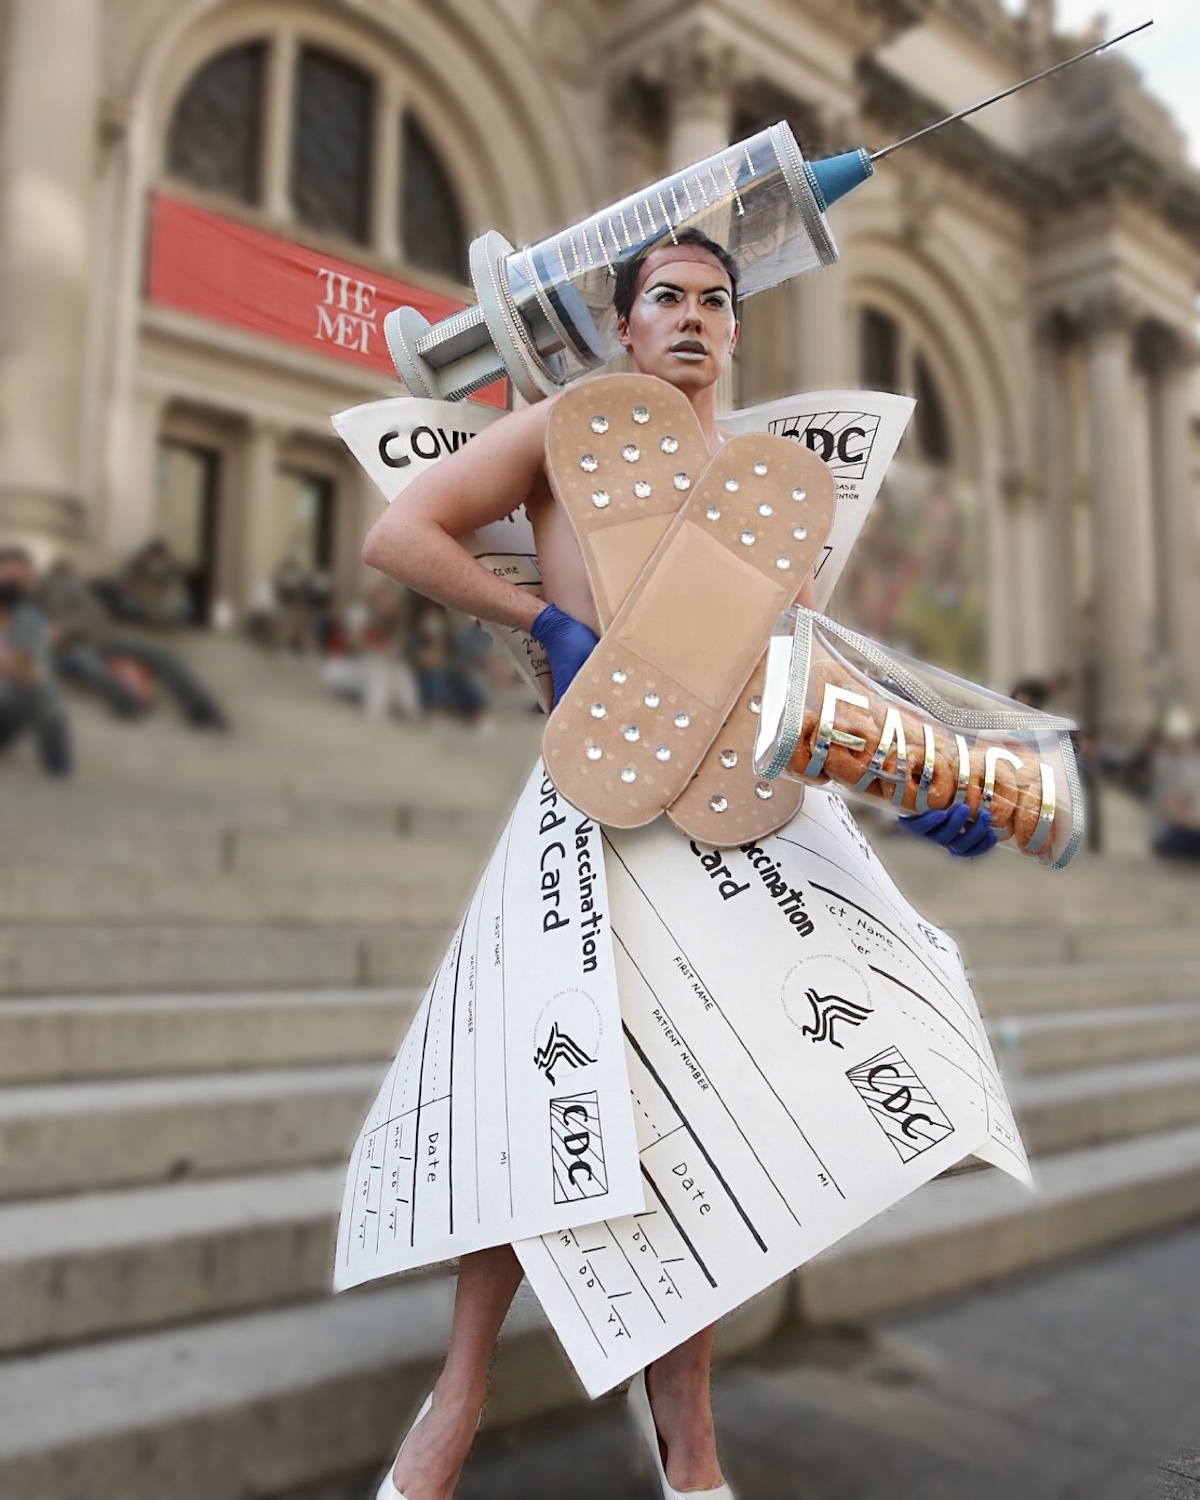 Artist's Vaccine-Inspired Met Gala Dress Is a Tribute to Science